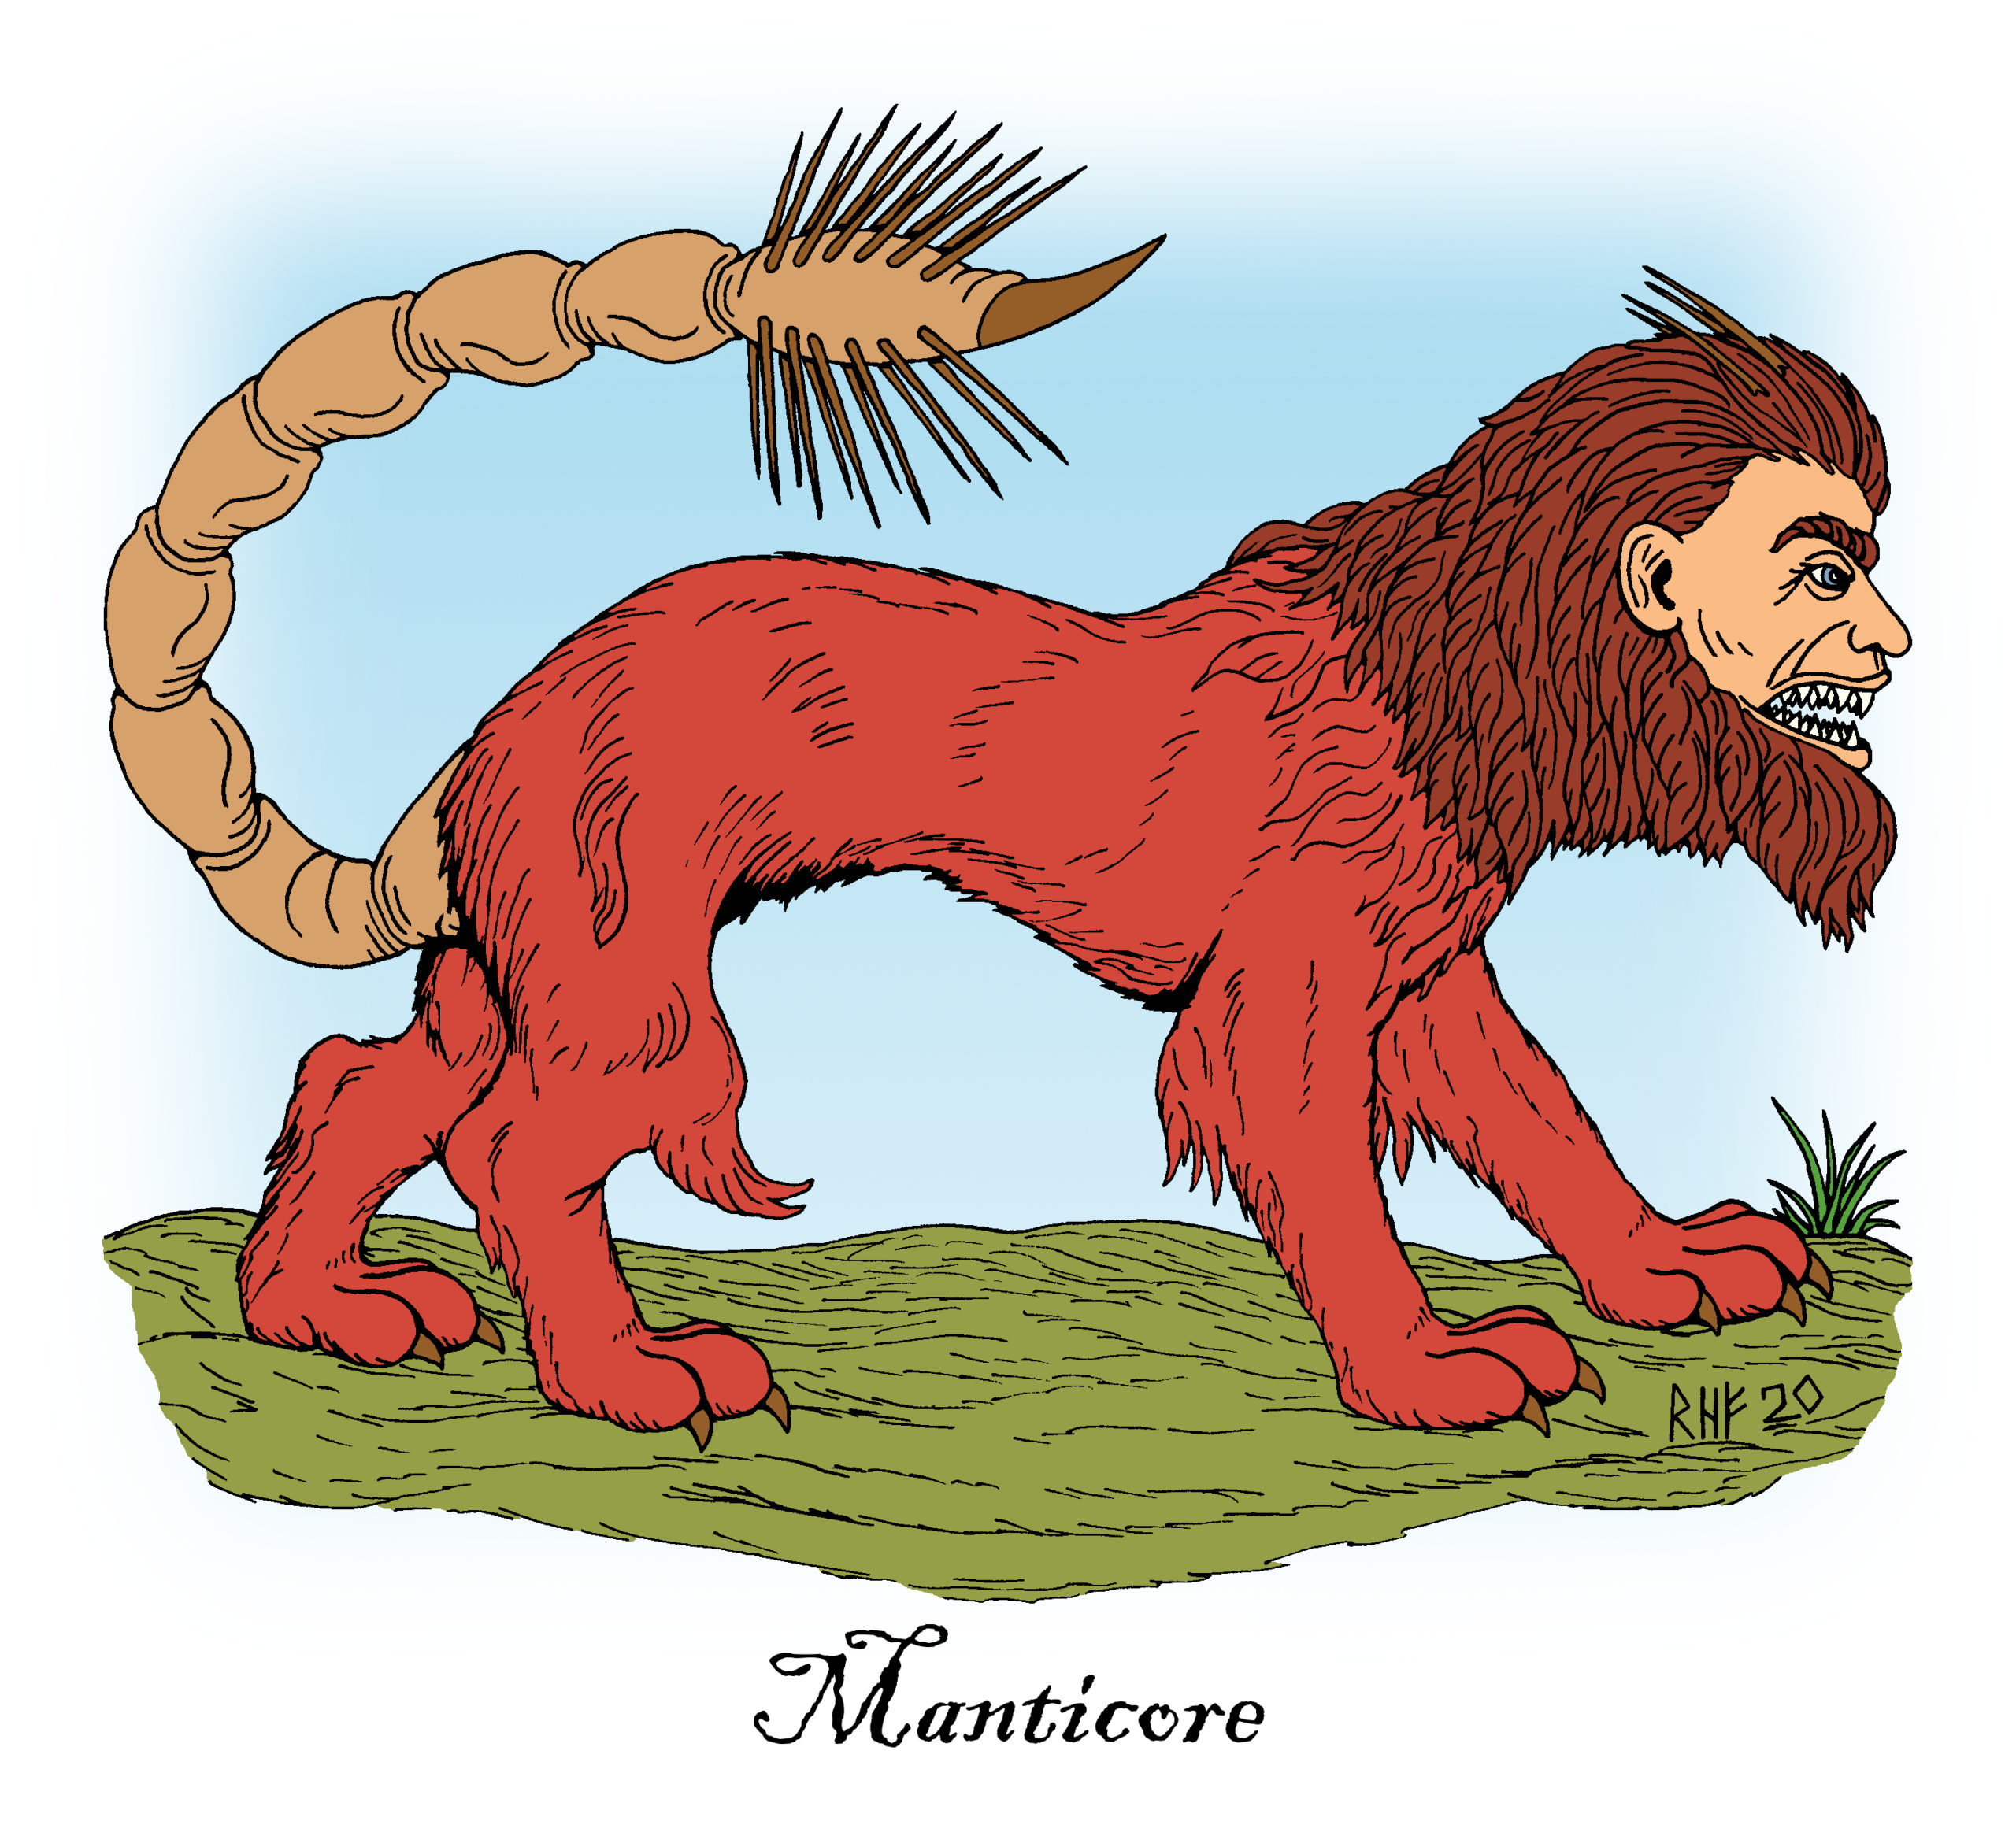 Manticore: Man-Eating Hybrid Beast of Legend and Art by Richard H. Fay 1